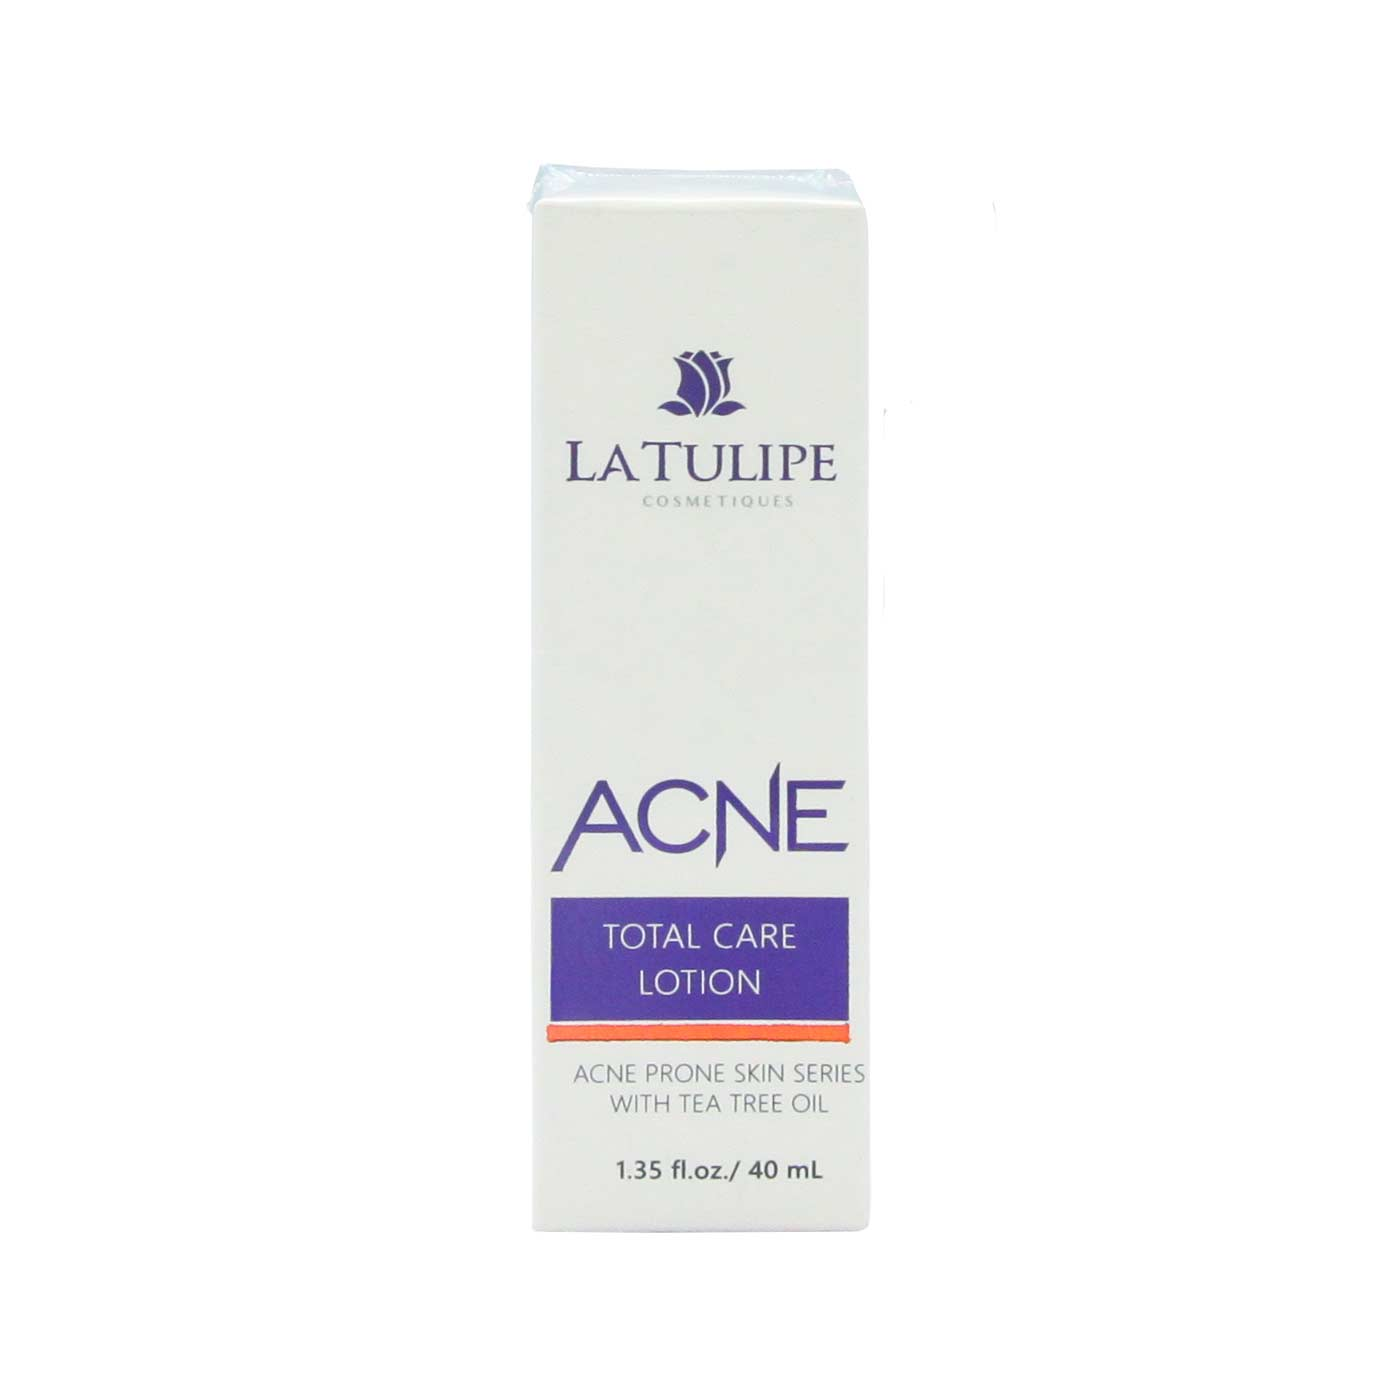 La-Tulipe-Acne-Total-Care-Lotion-sfw